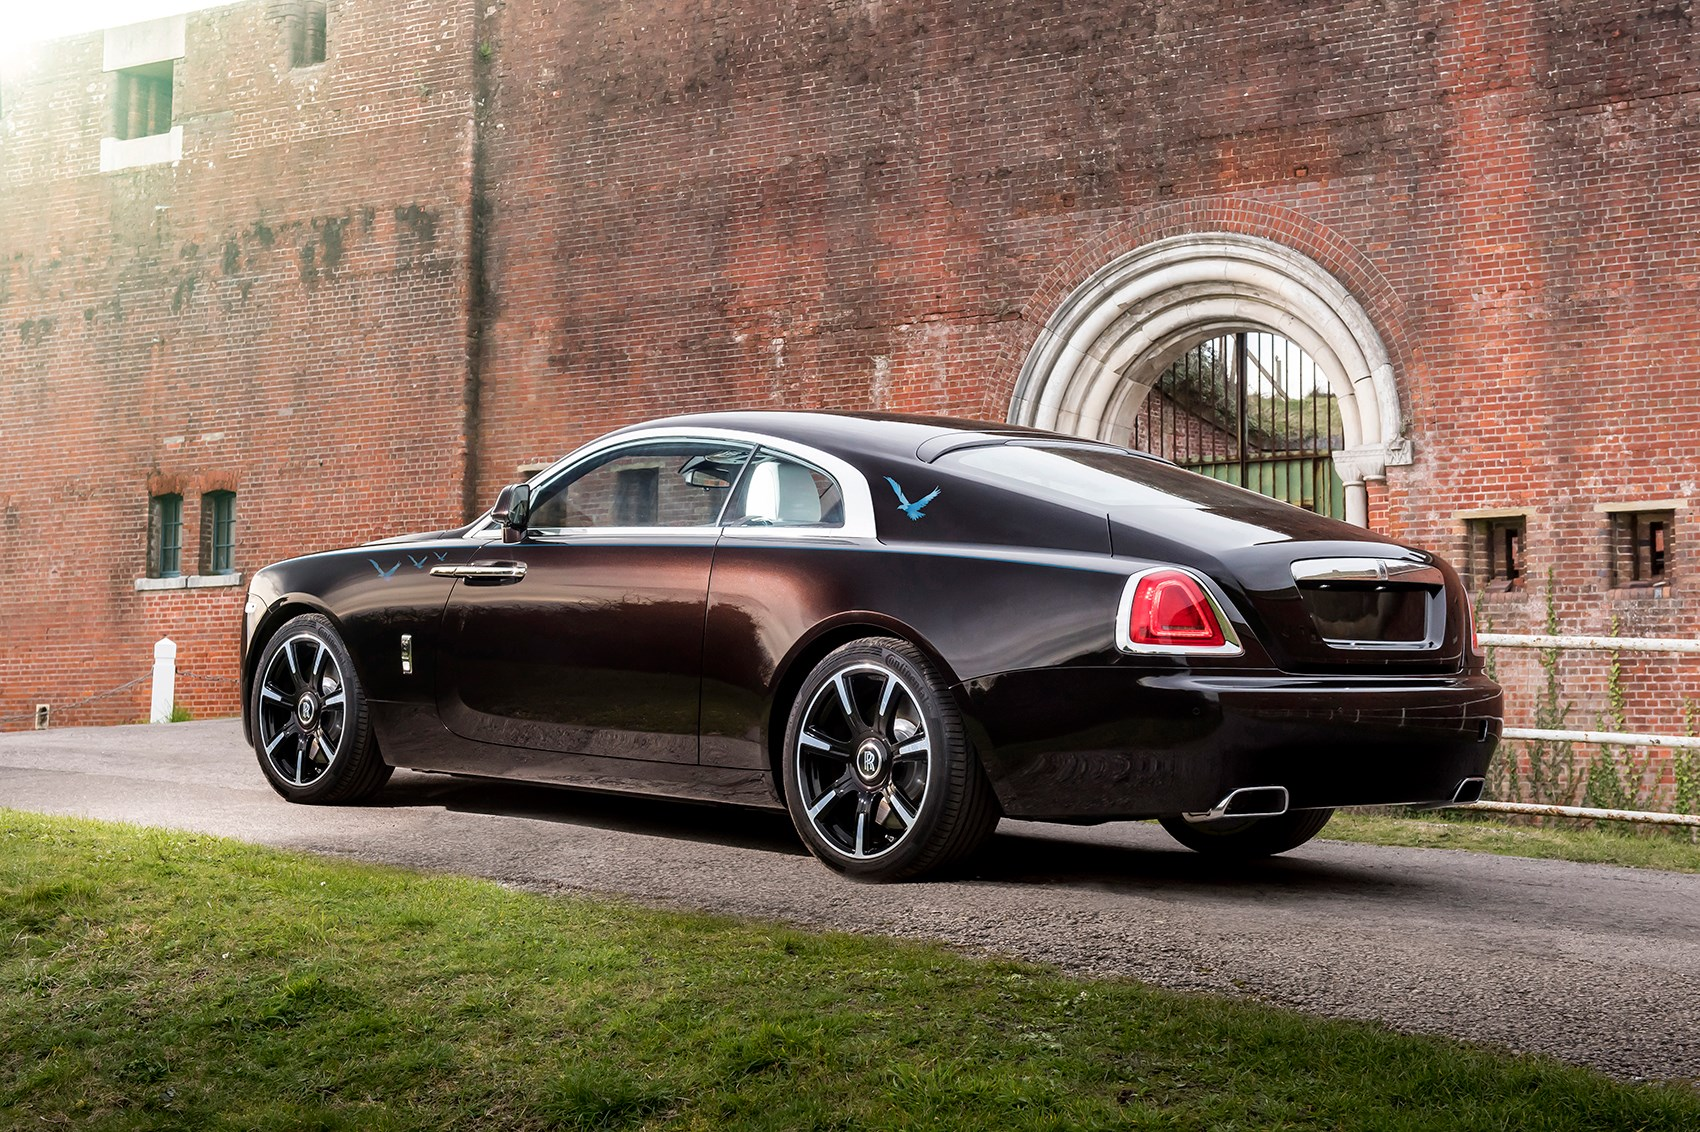 Rock 'n' Roller: Rolls-Royce Wraith 'Inspired By British